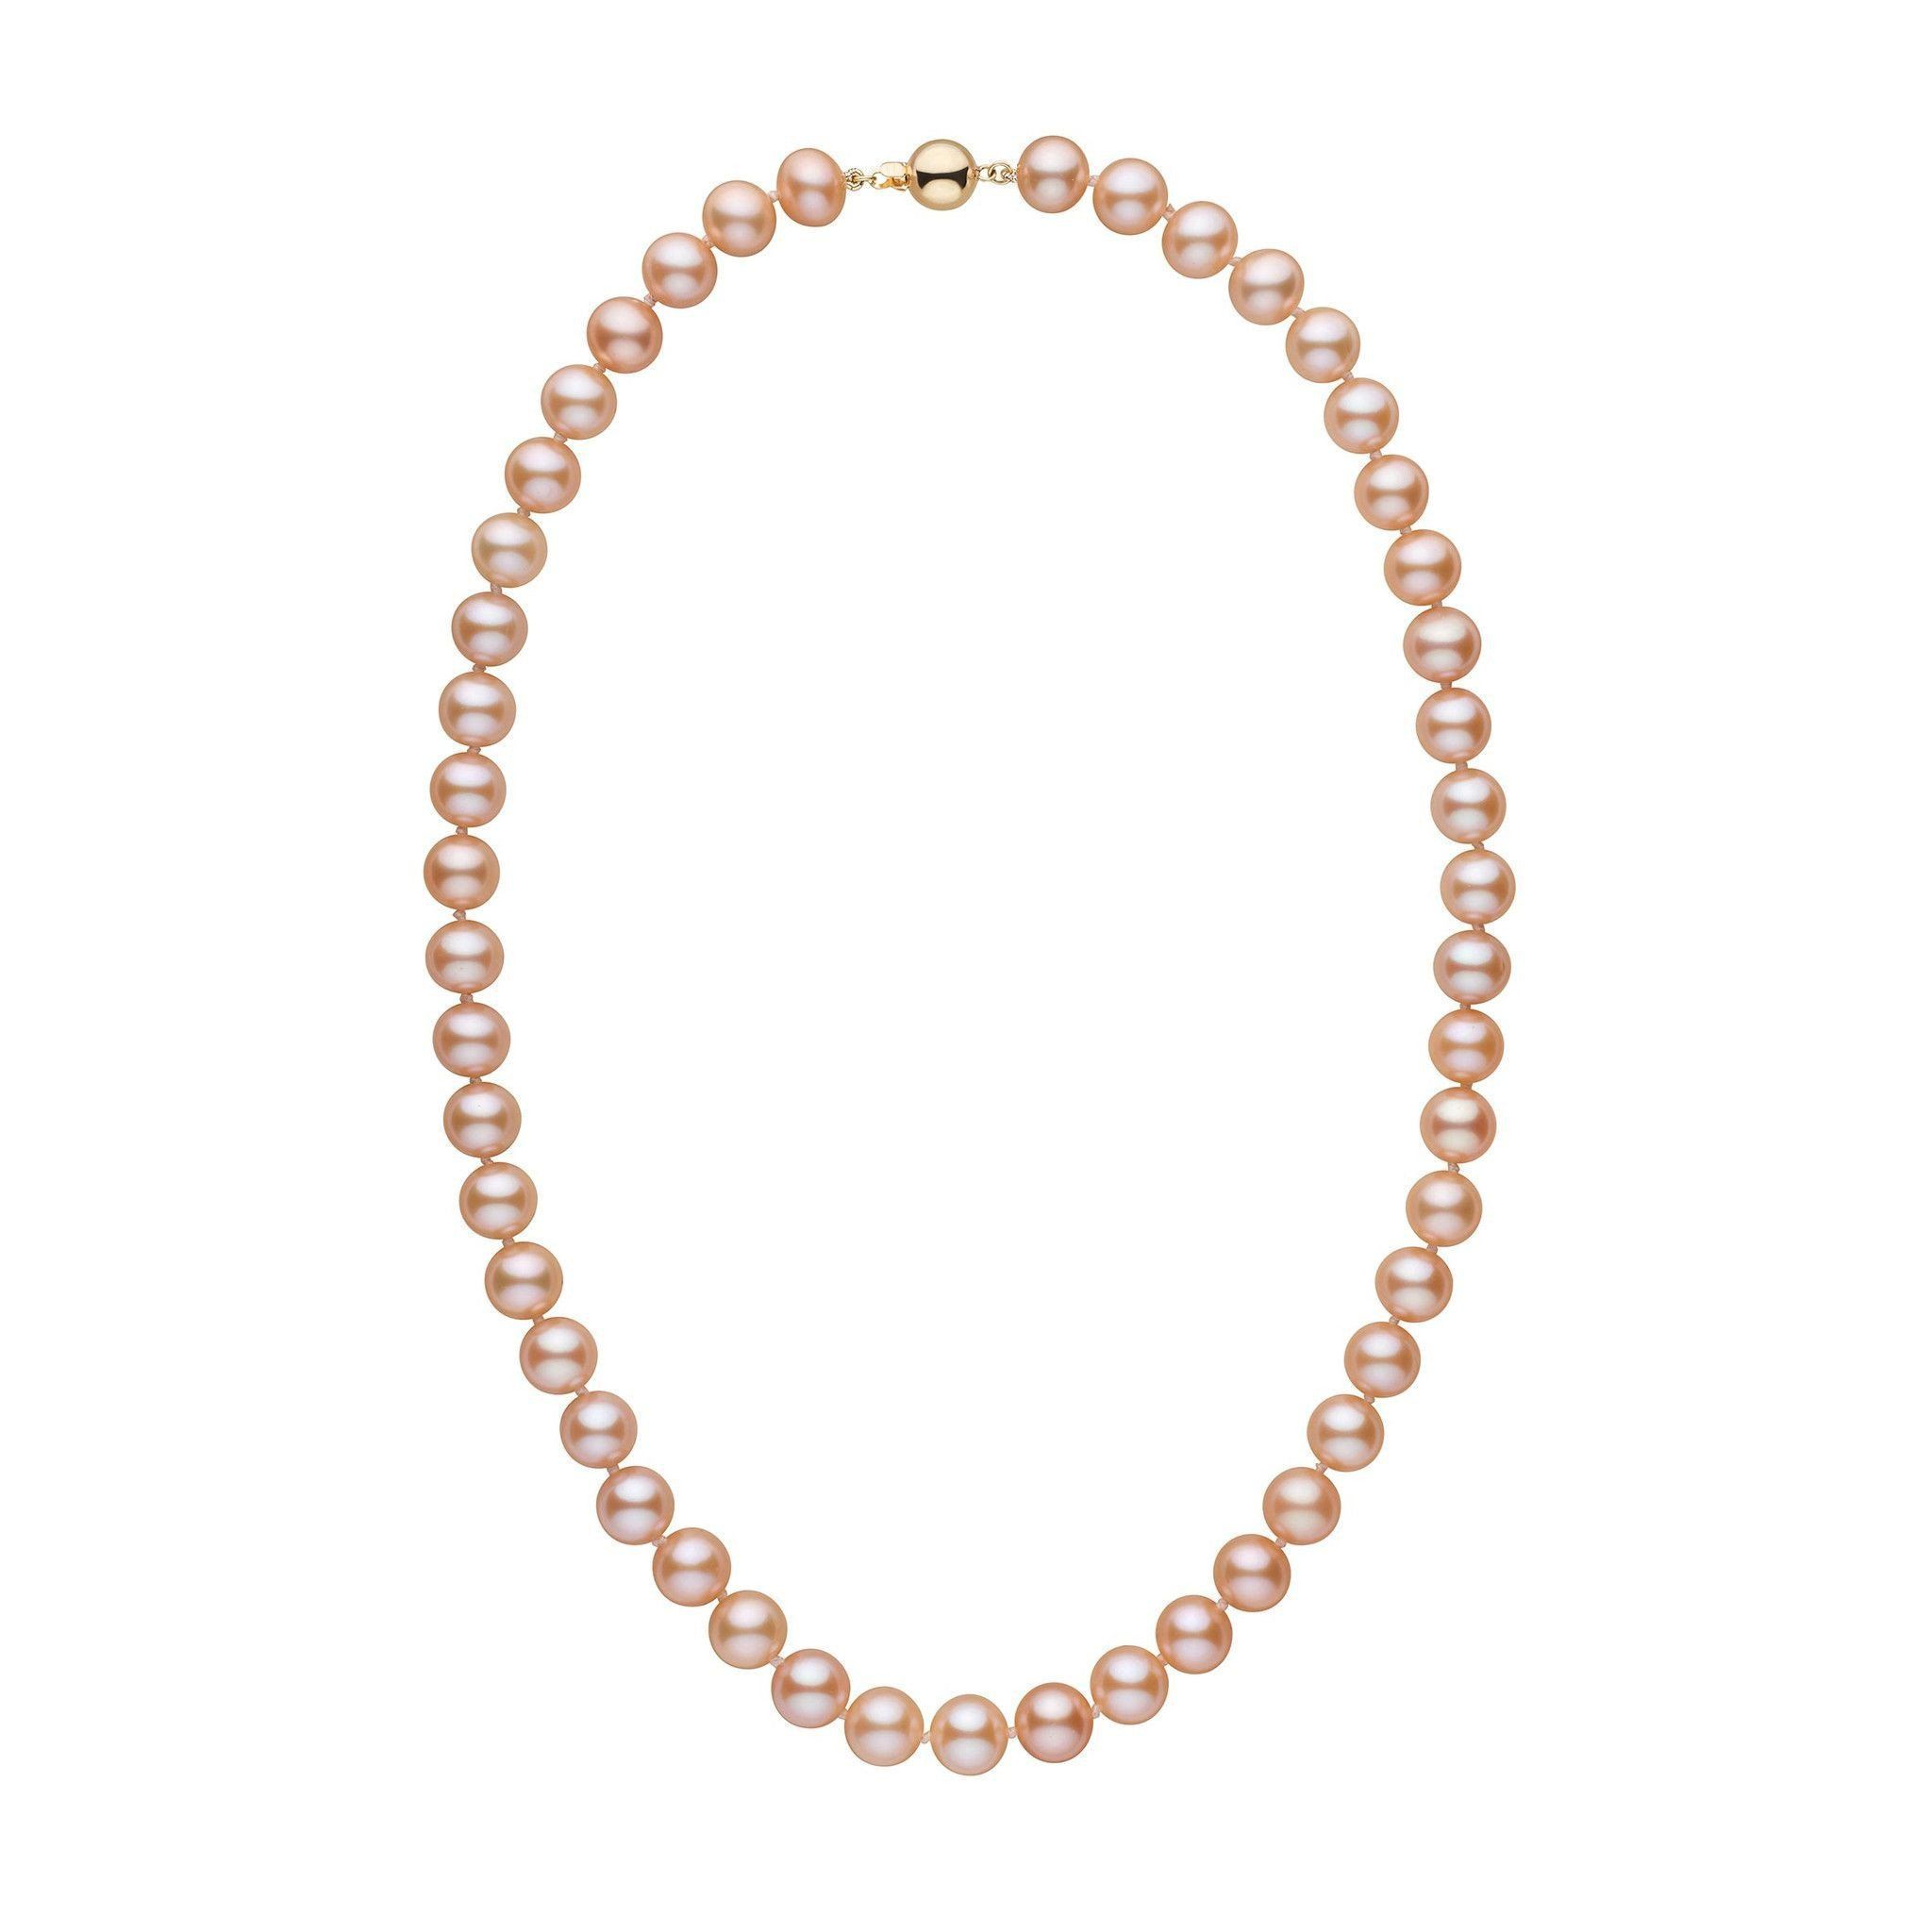 8.5-9.0 mm 18 Inch AA+ Pink to Peach Freshwater Pearl Necklace